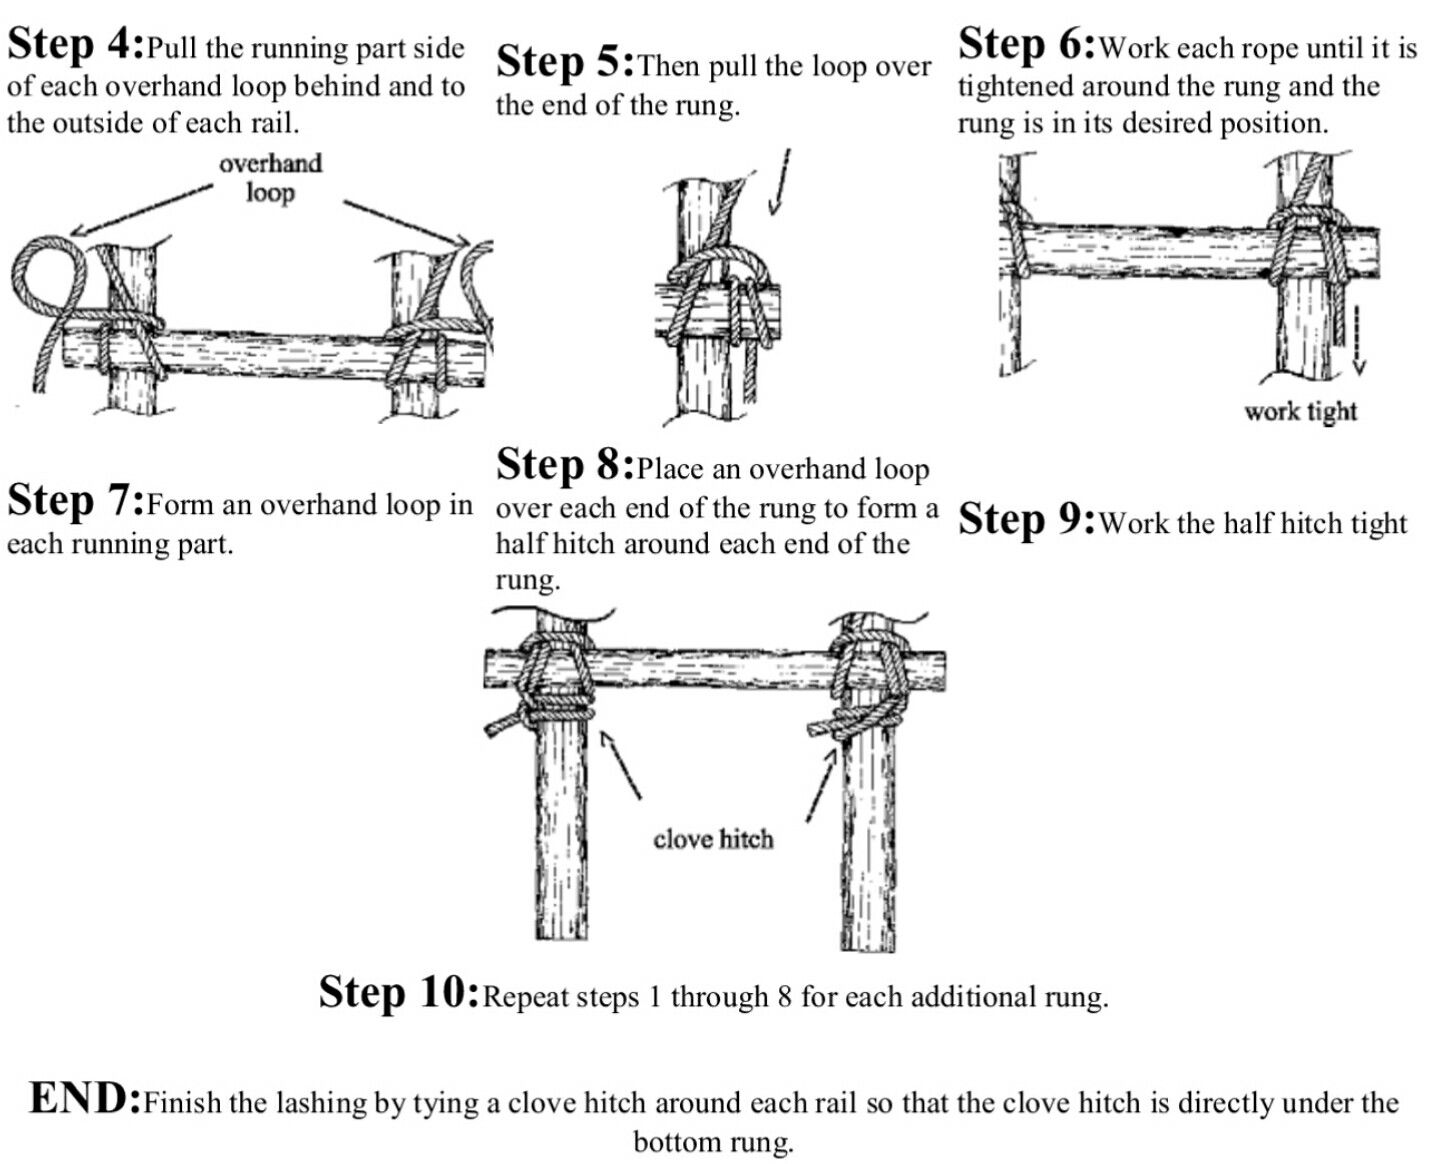 Cub Scouts Ladder Lashing | Scouts - Knots | Pinterest for Rope Ladder Knot  117dqh